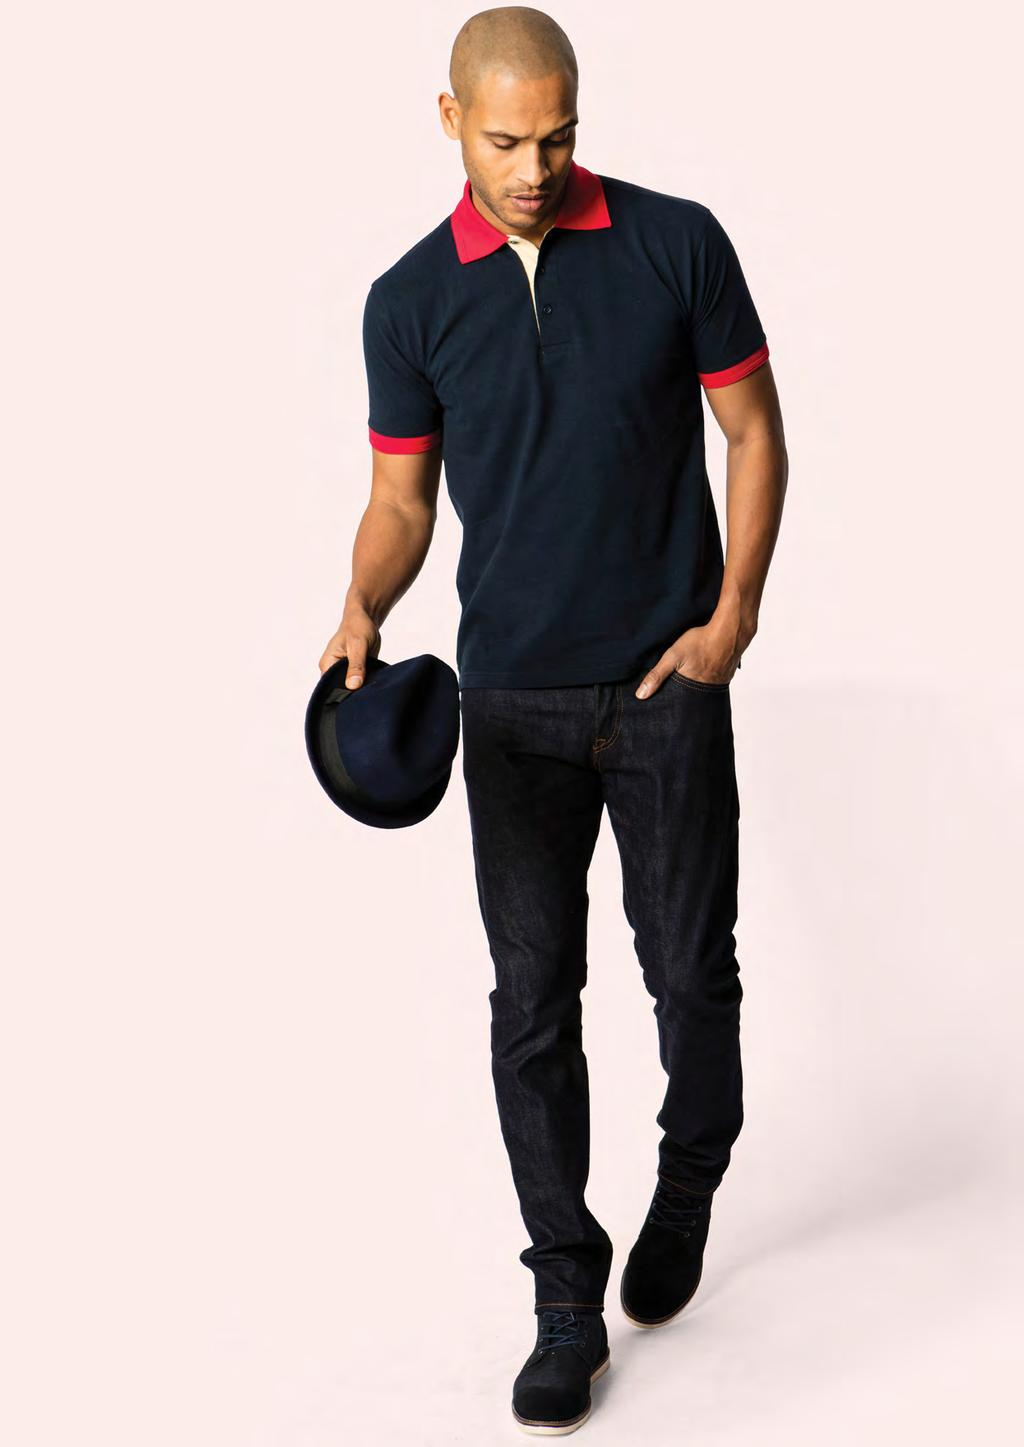 POLOSHIRTS UC107 UNISEX CONTRAST POLOSHIRT 250 40 40/10 100% Ring Spun Combed Cotton Reactive Dyed Contrast Collar, Cuffs & Placket Knitted Collar & Cuffs Half Moon